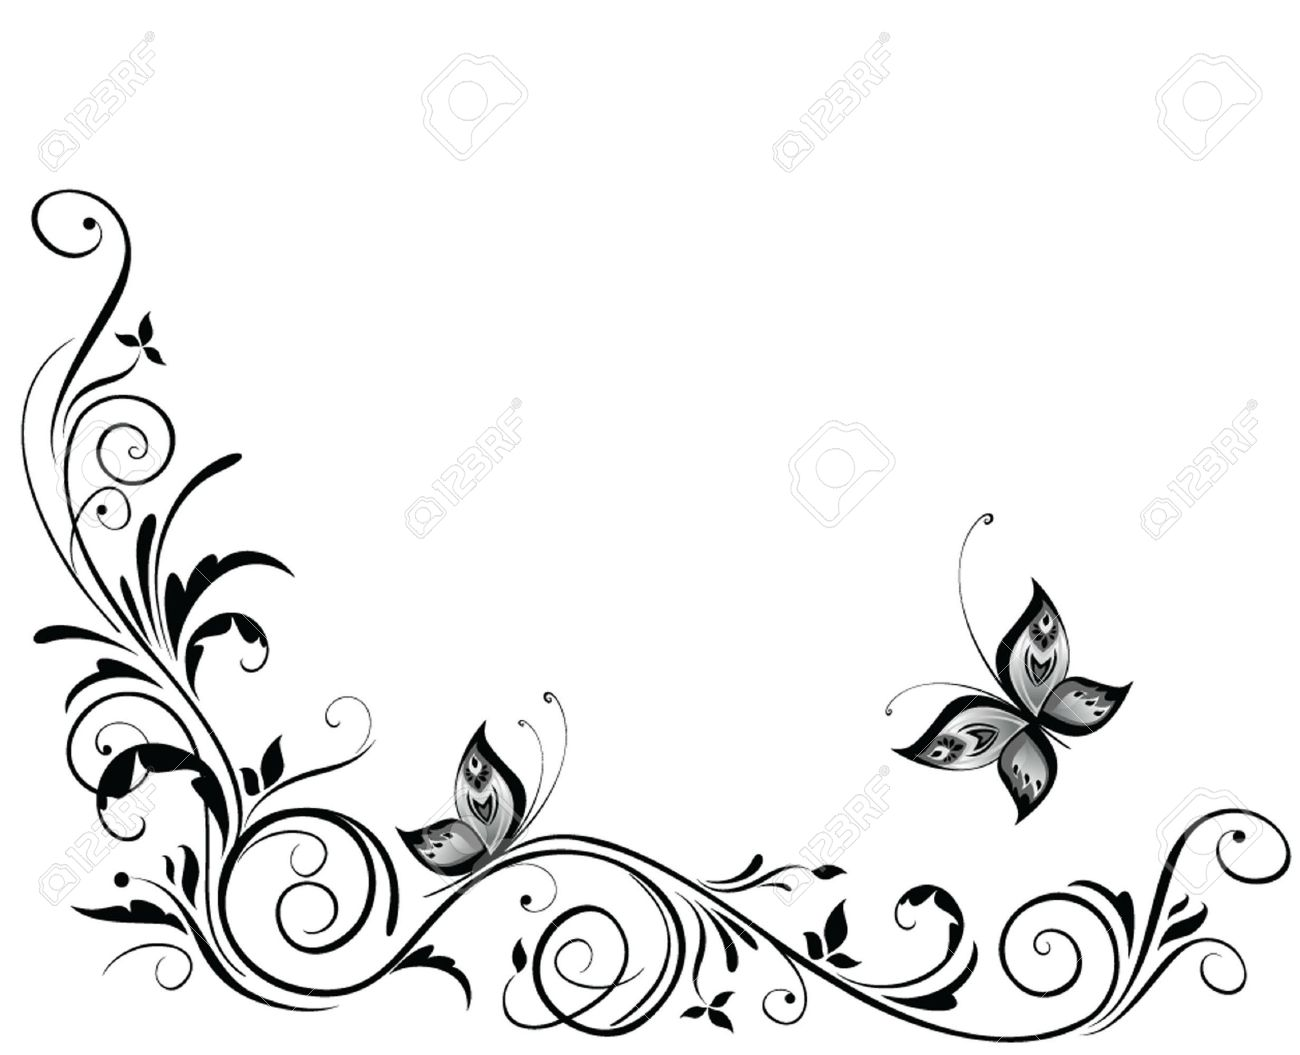 Vintage Wedding Design Royalty Free Cliparts, Vectors, And Stock ...